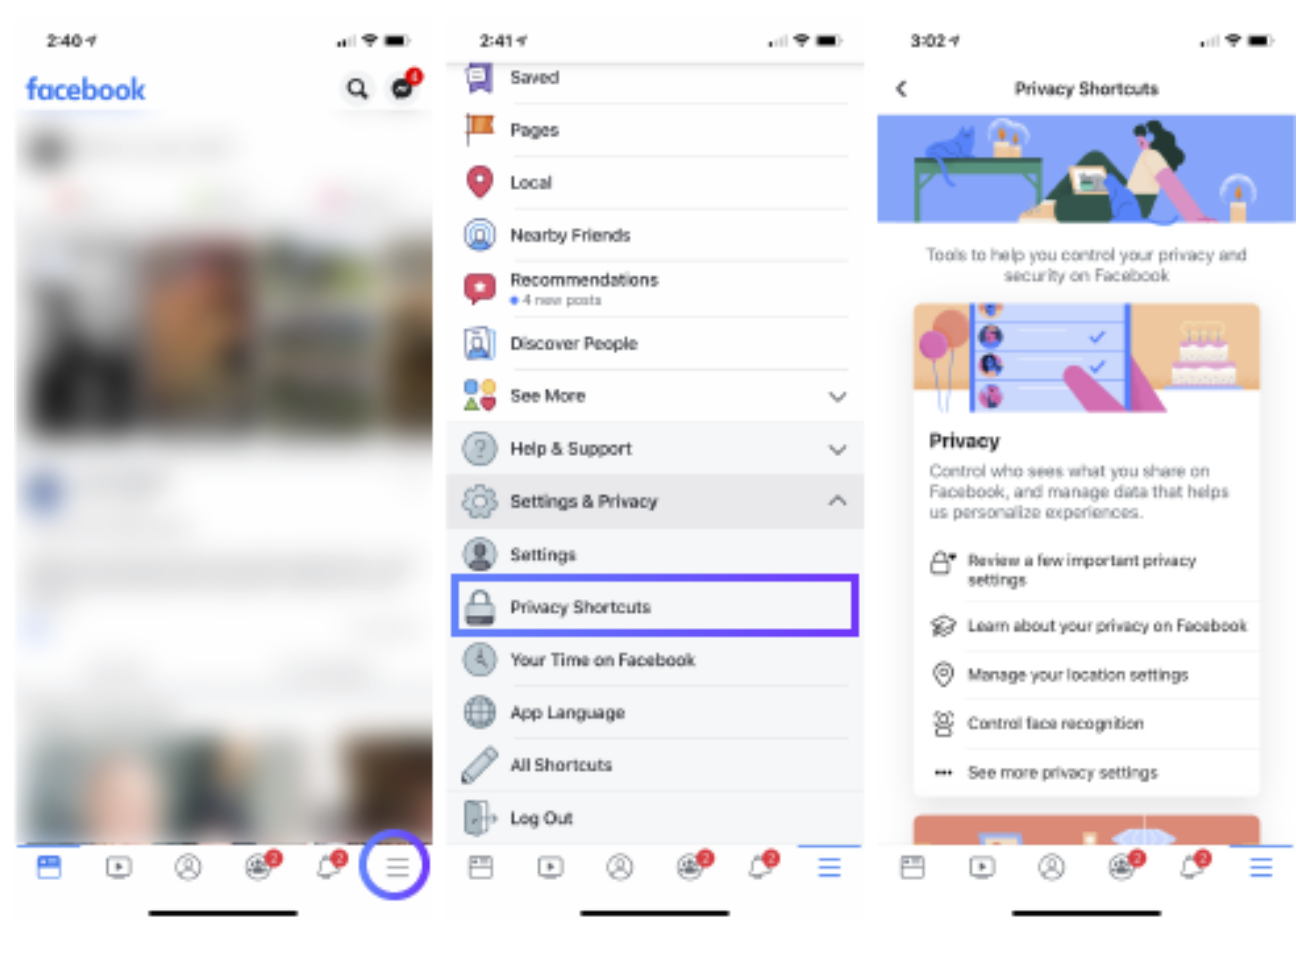 Enable Privacy Shortcuts in Facebook